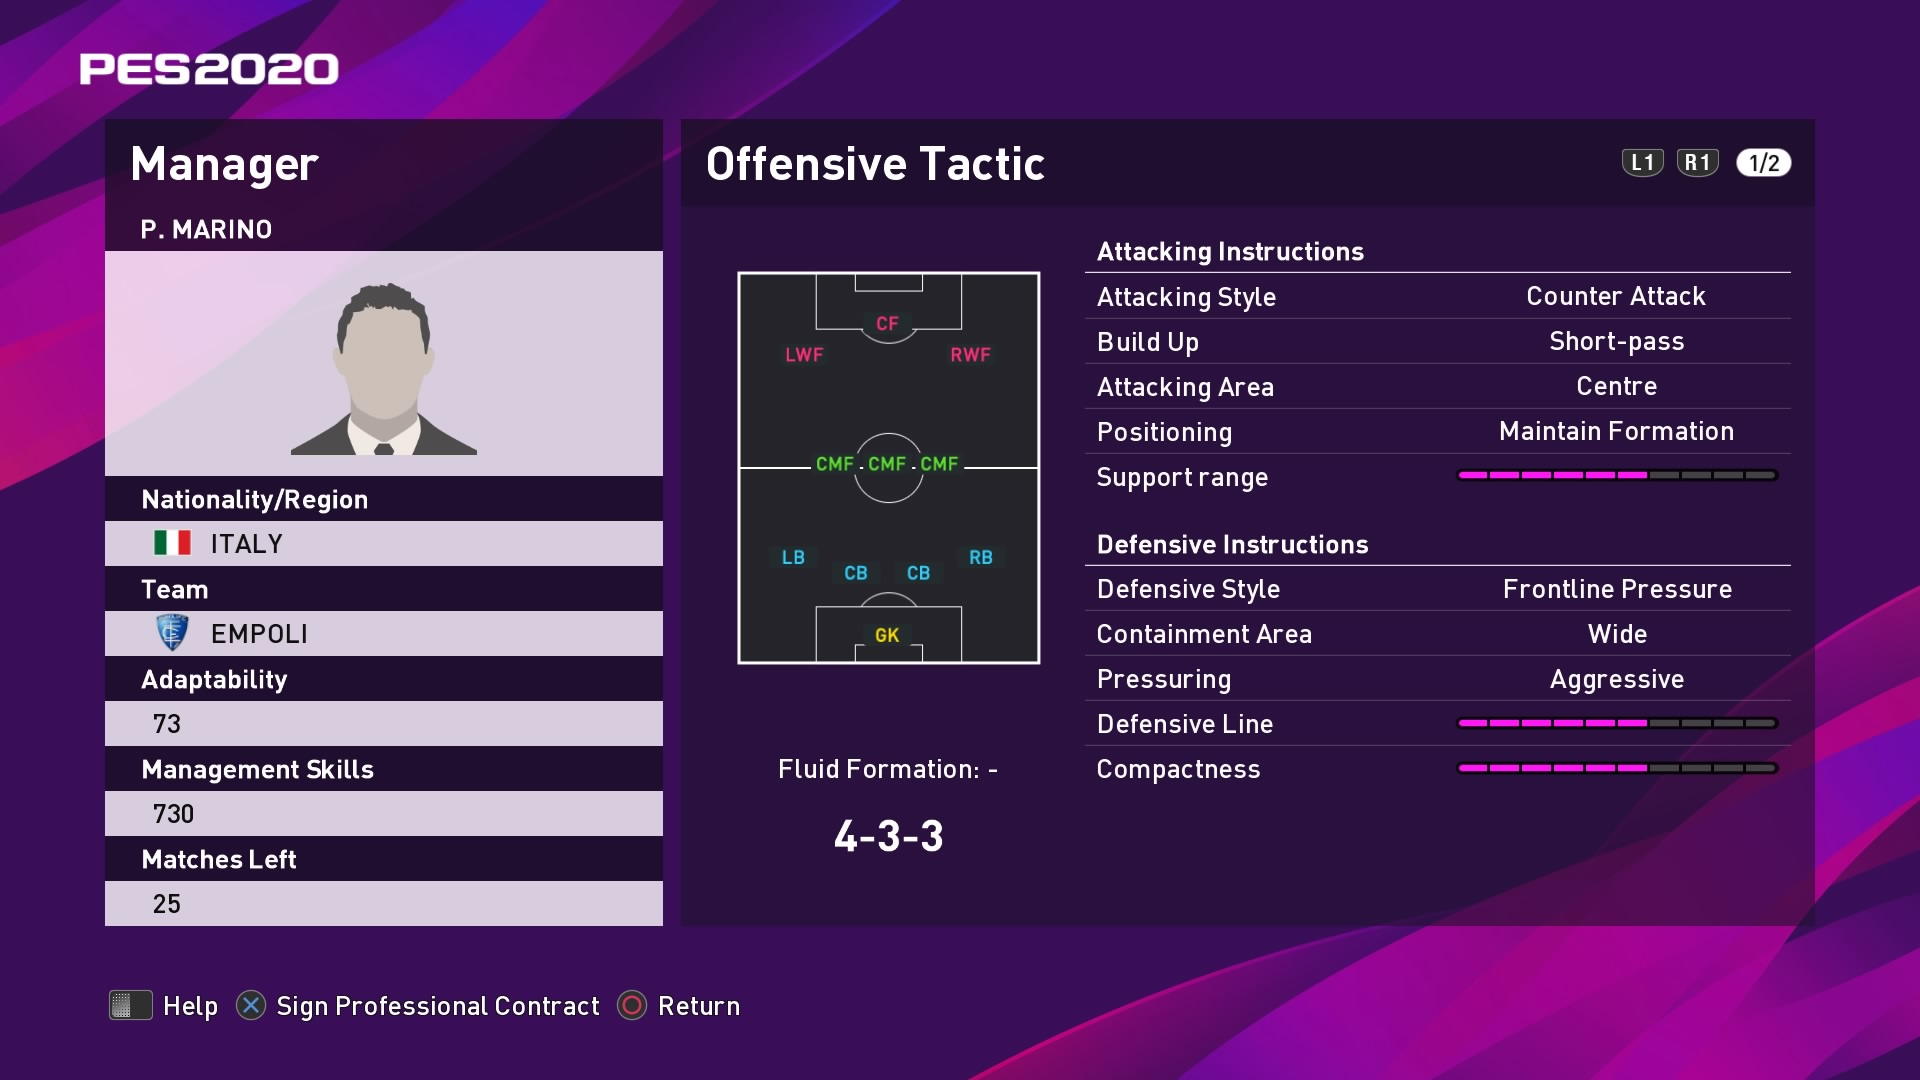 P. Marino (Pasquale Marino) Offensive Tactic in PES 2020 myClub